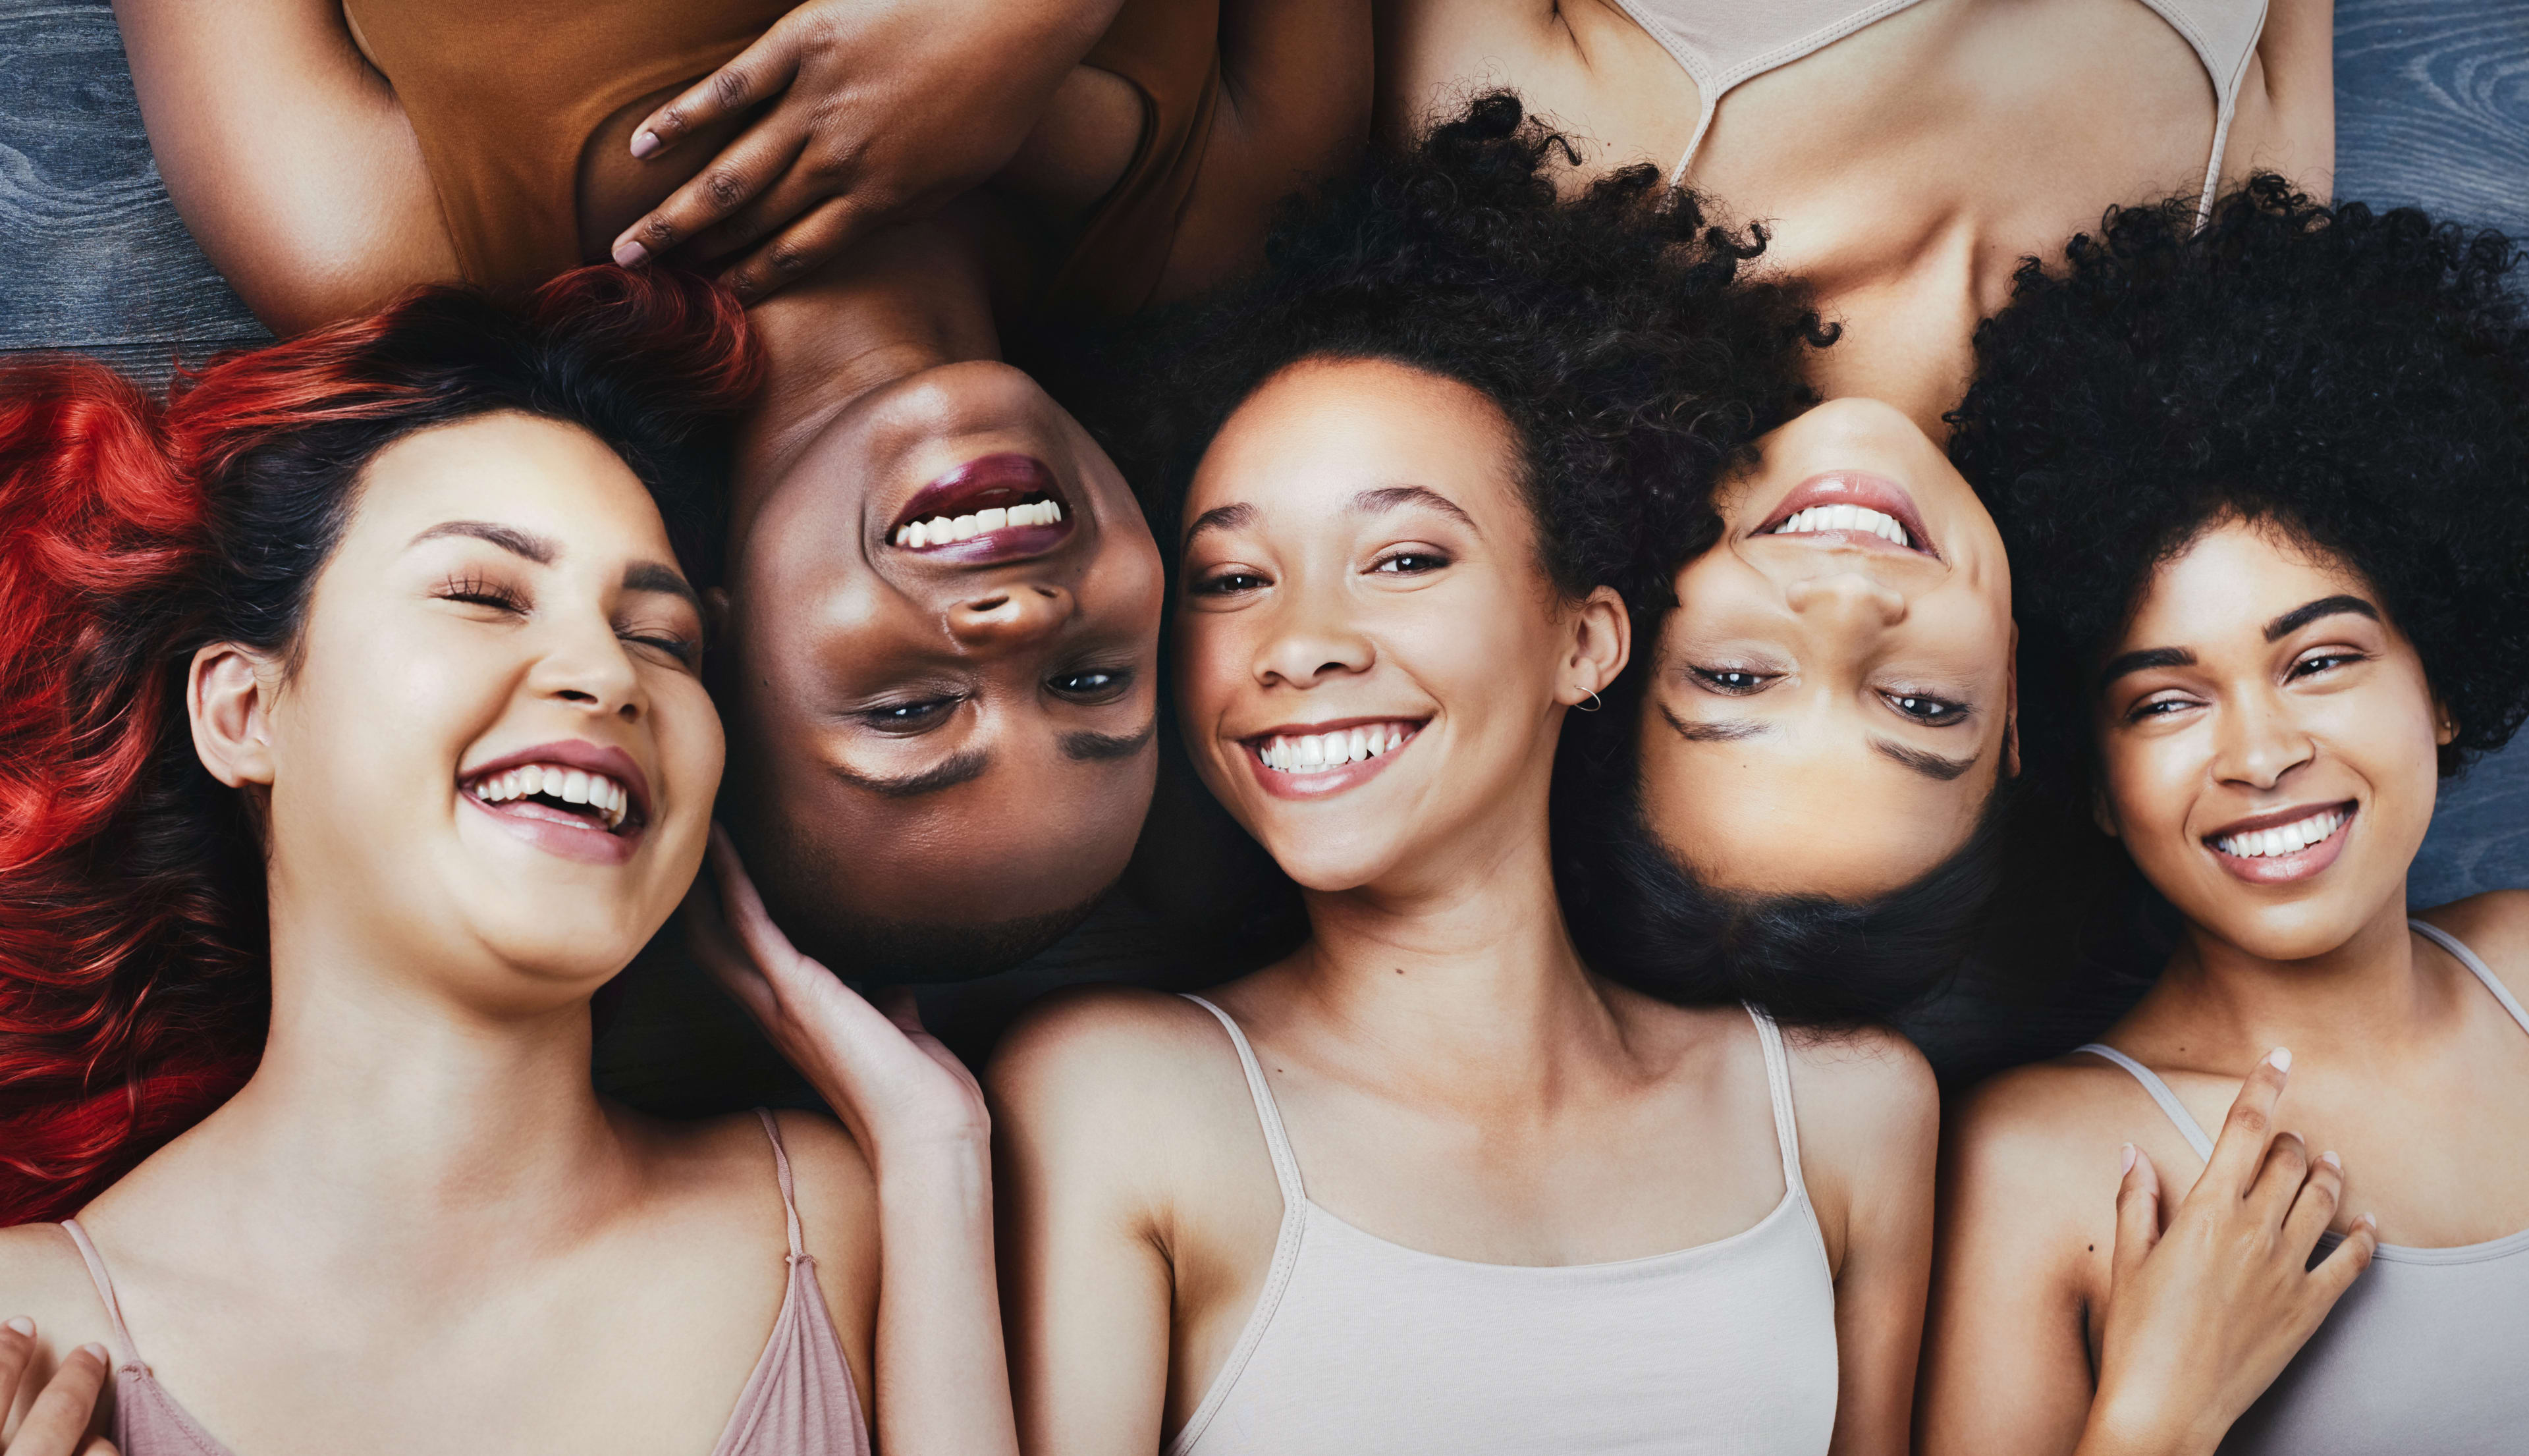 a group of young women with different colored skin tones smiling